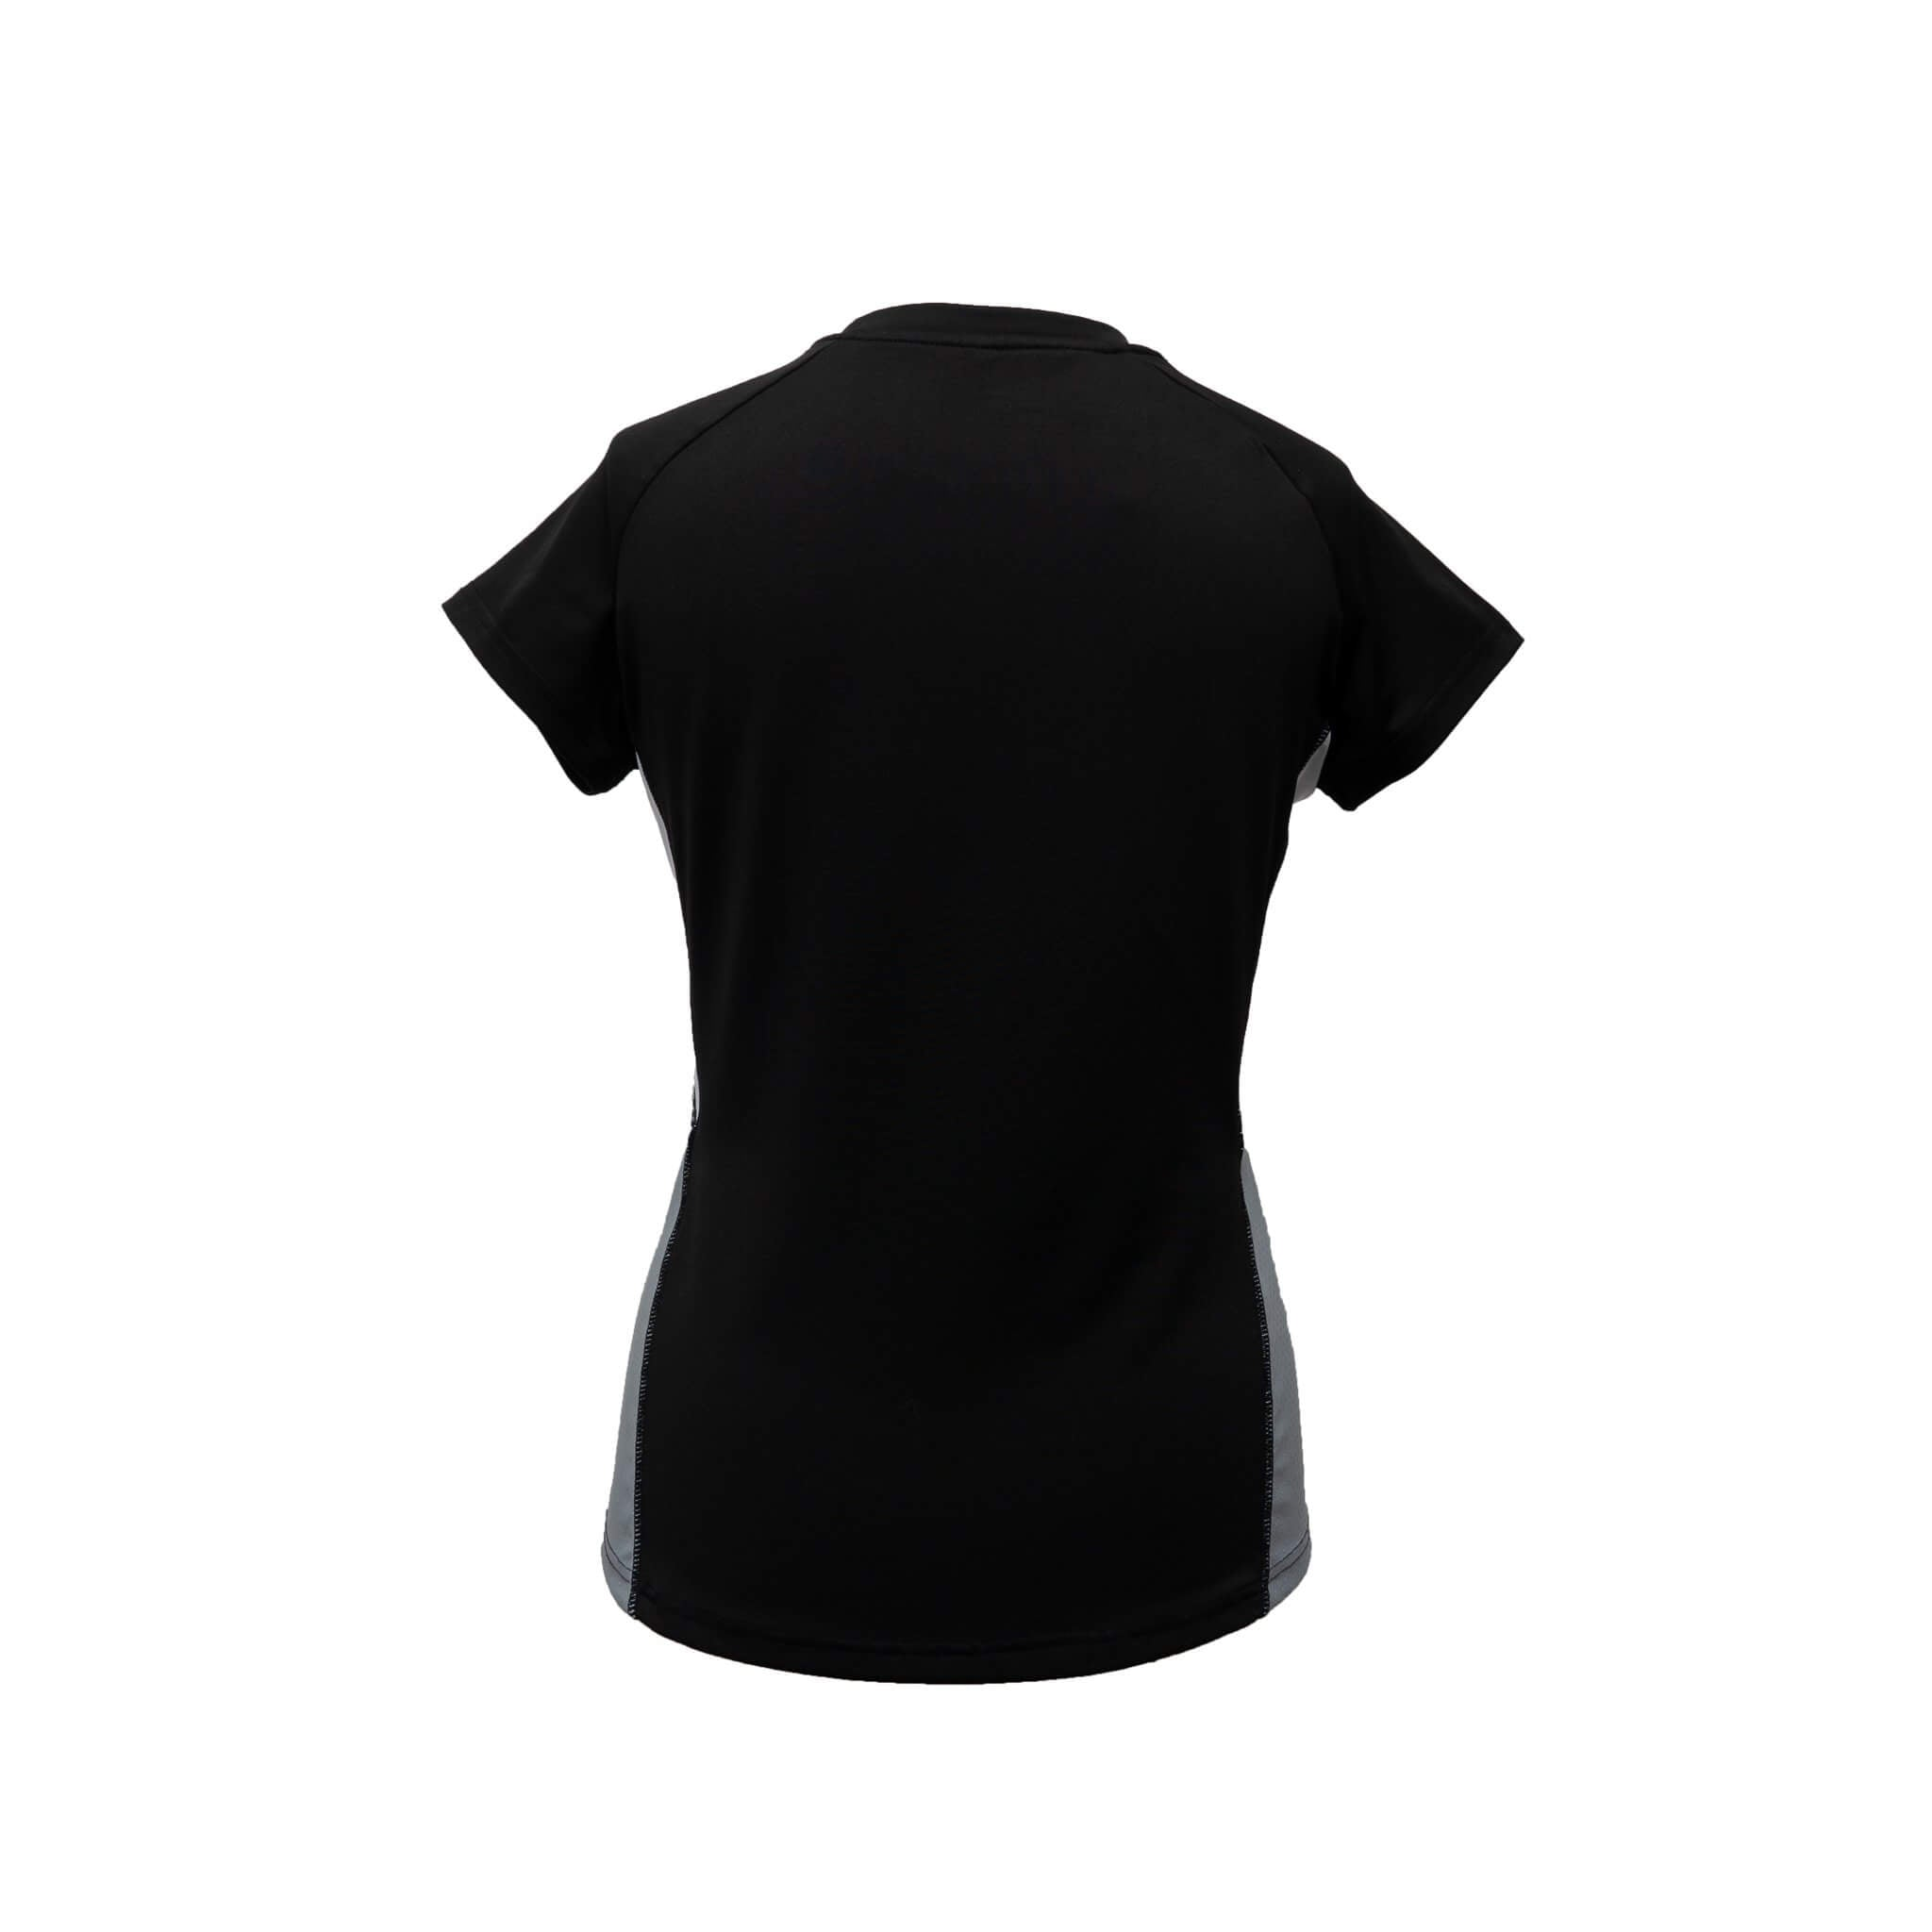 Black Illusion Activewear Tee